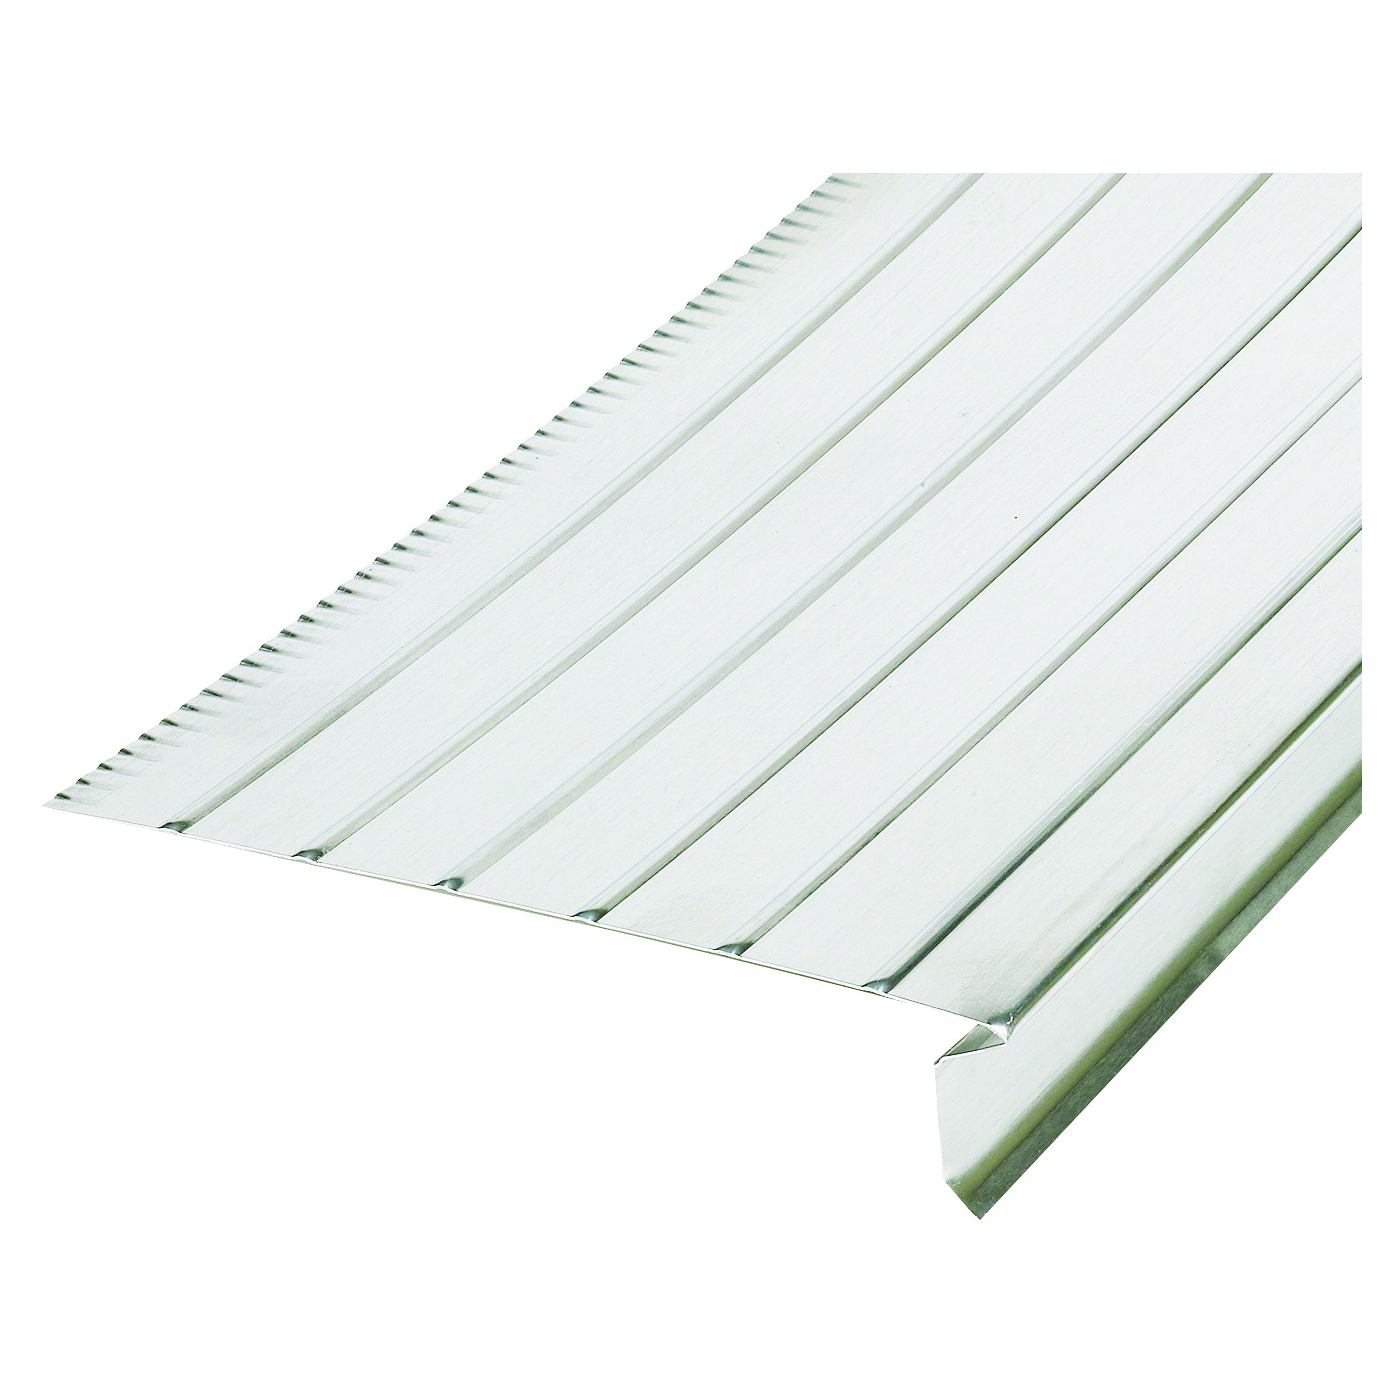 Picture of Amerimax 5421700120 Roof Edge, 10 ft L, Aluminum